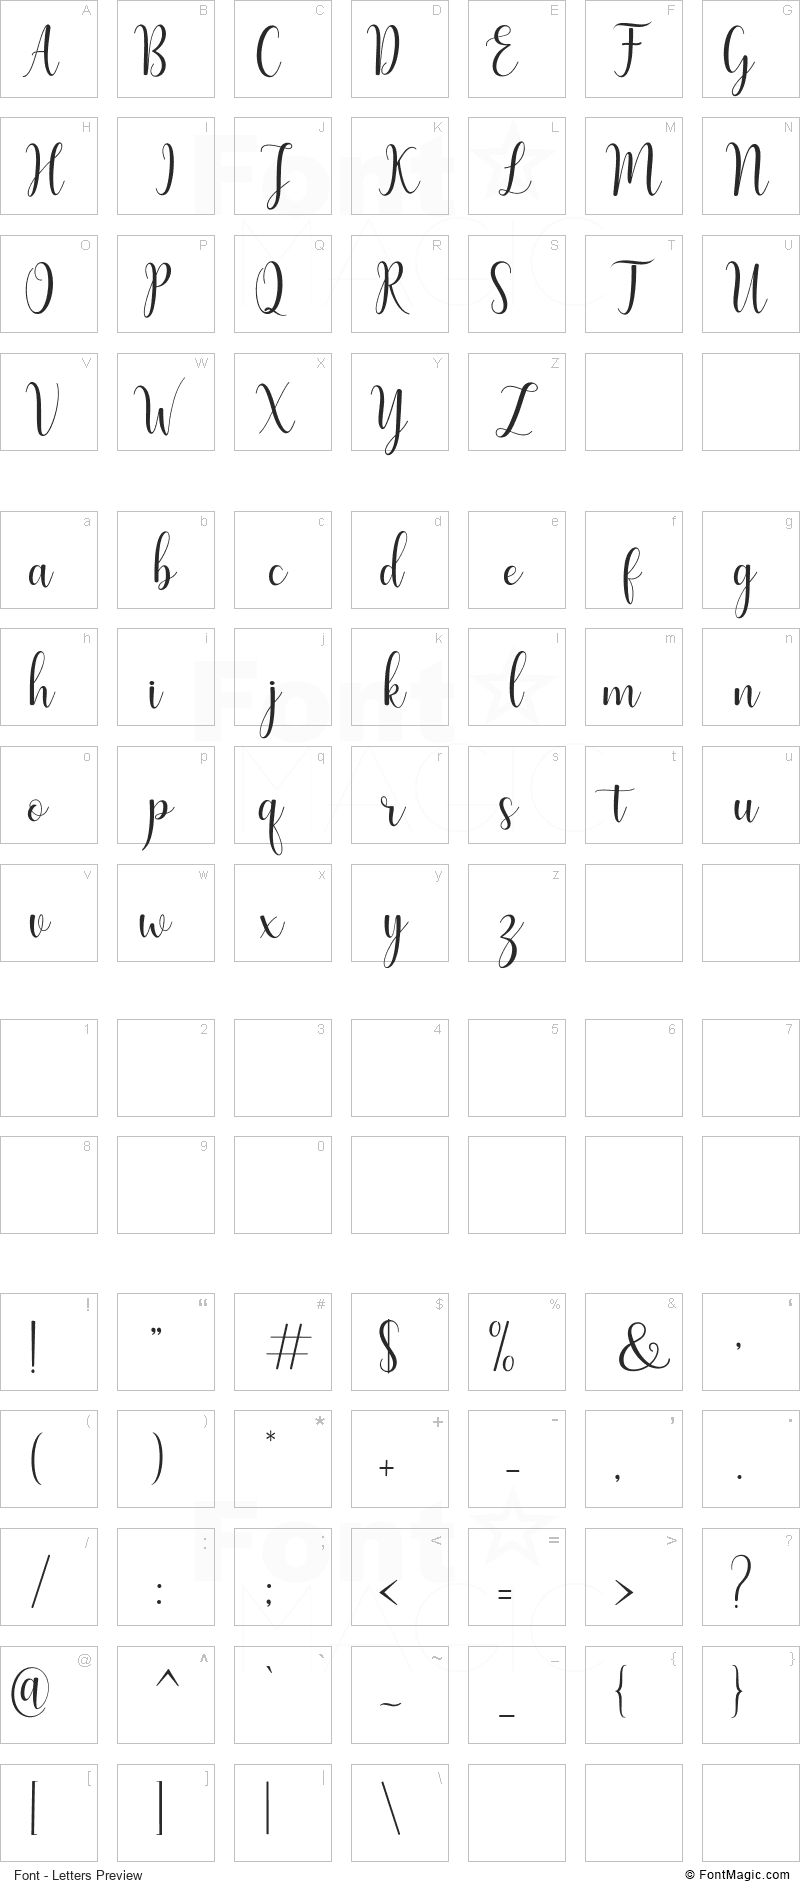 Humble Font - All Latters Preview Chart